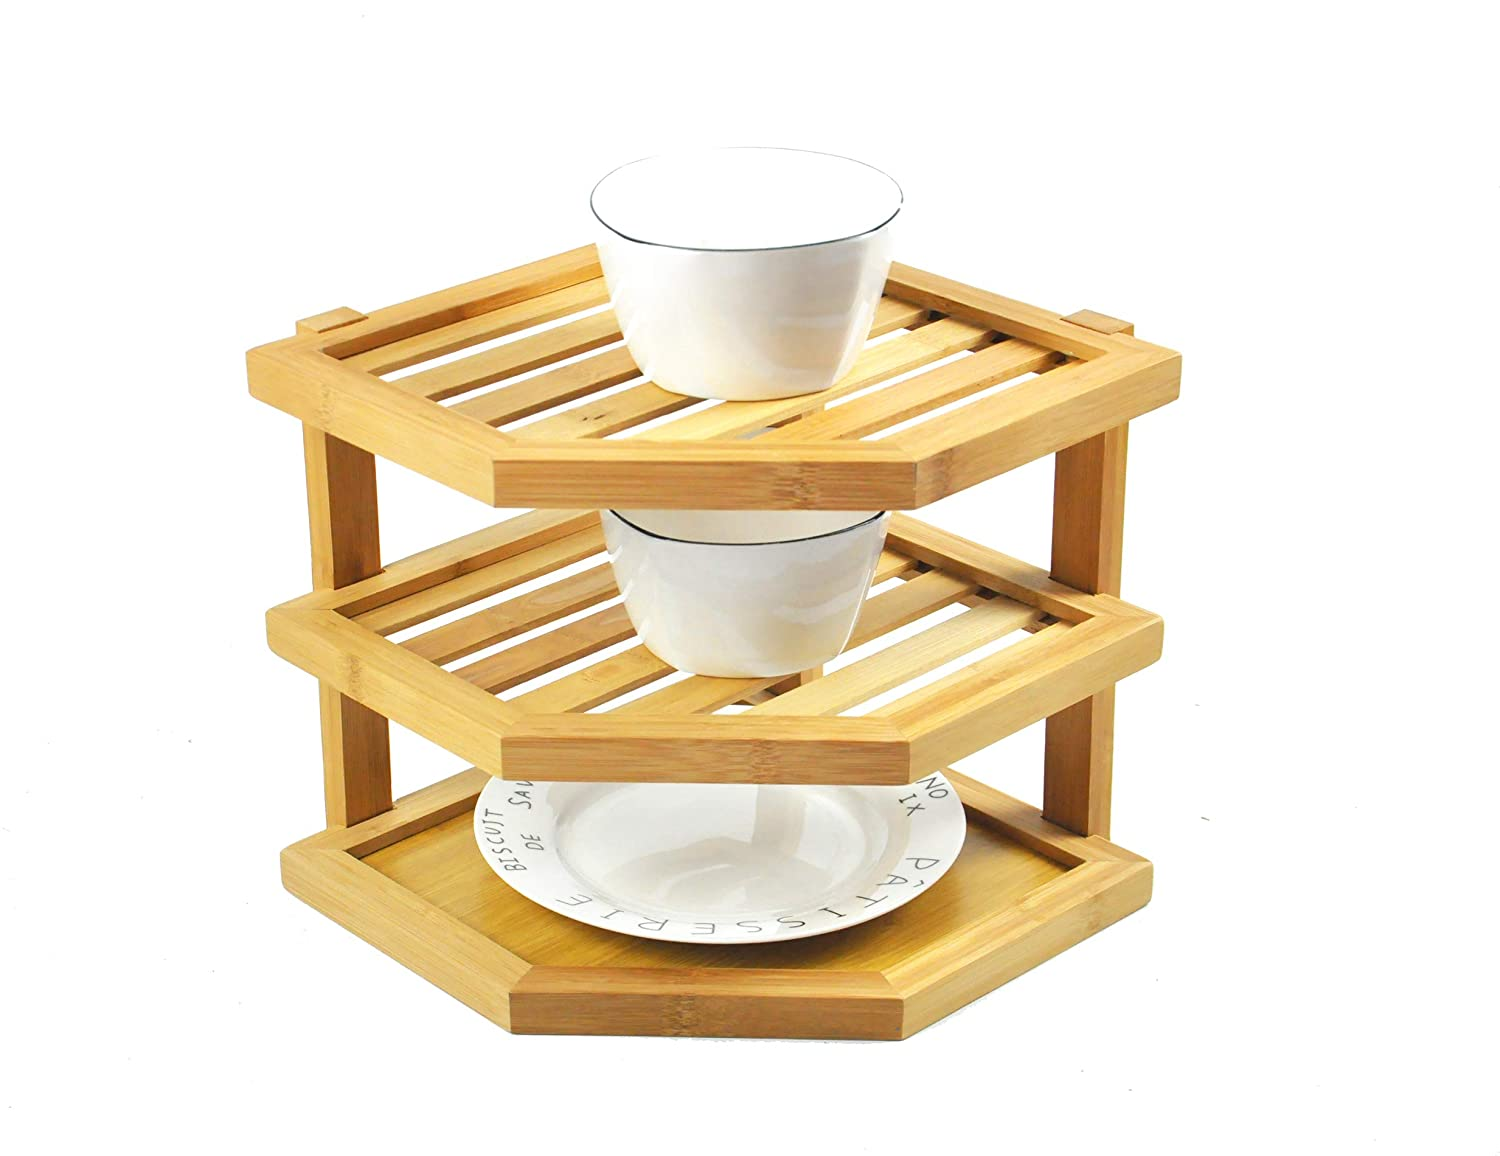 Knocbel Bamboo Corner Shelf, 3-Tier Freestanding Storage Natural Bamboo Rack (Natural Bamboo) HTOH